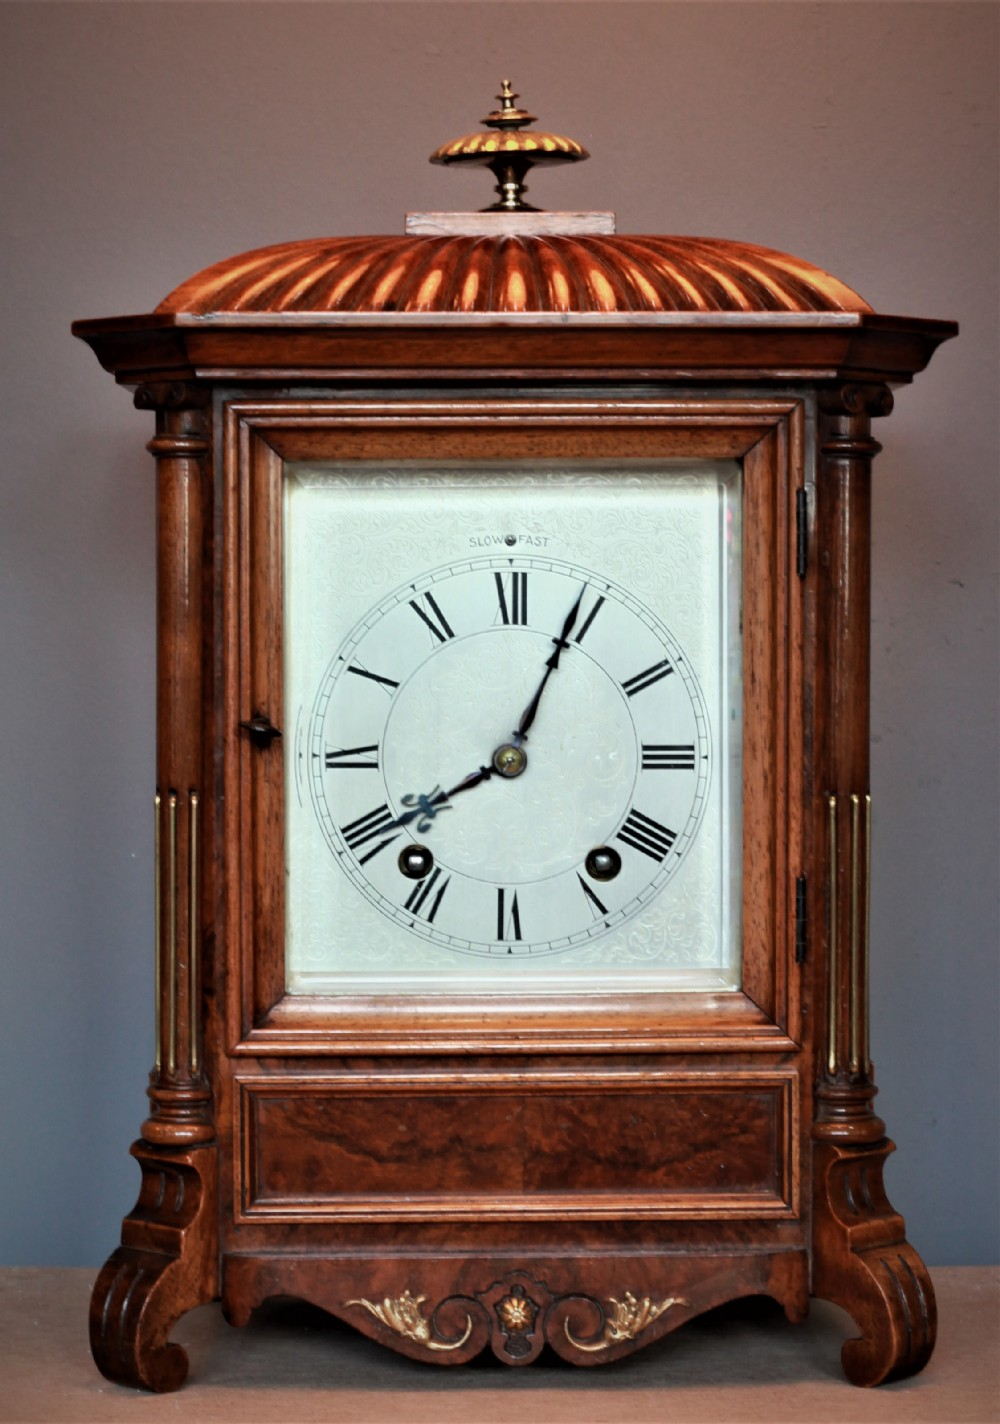 late 19th century lenzkirch bracket clock with engraved dial